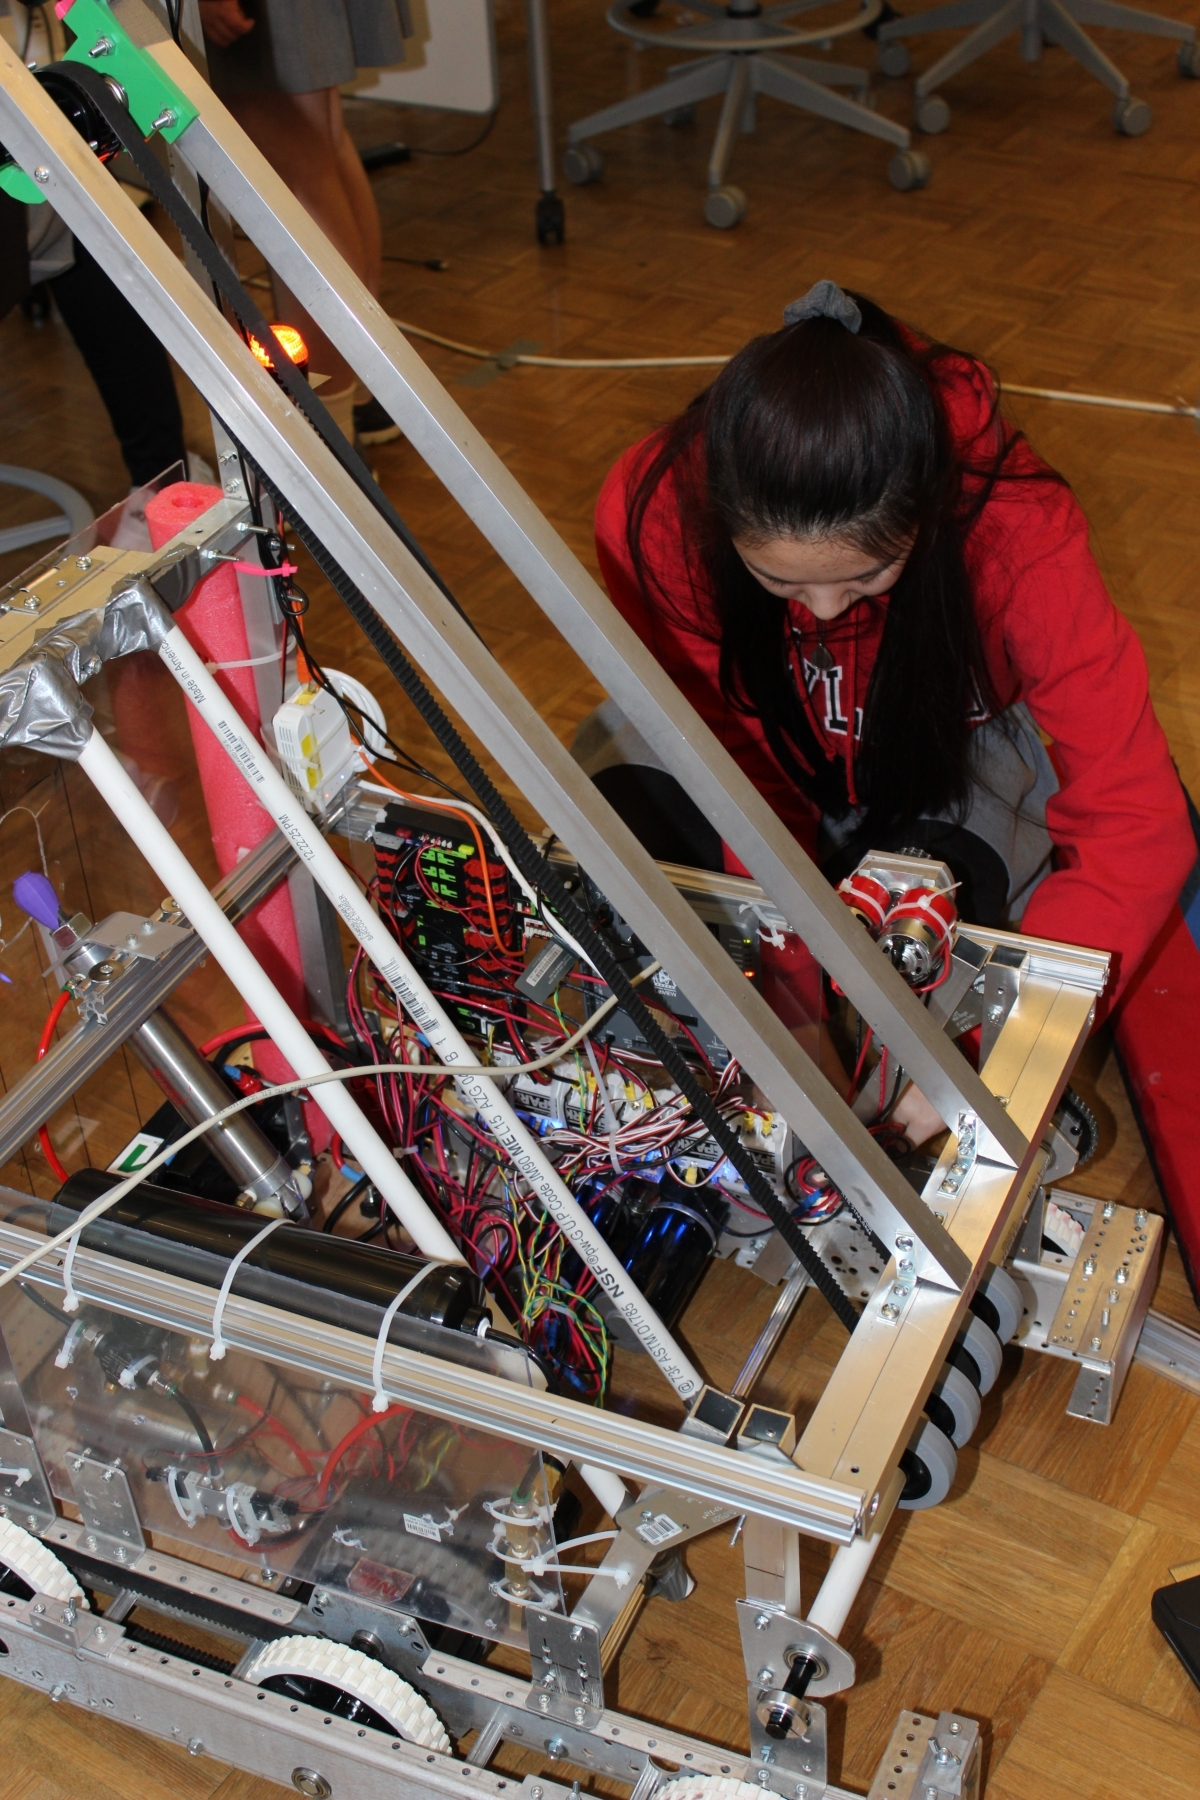 Final fixes to the robot